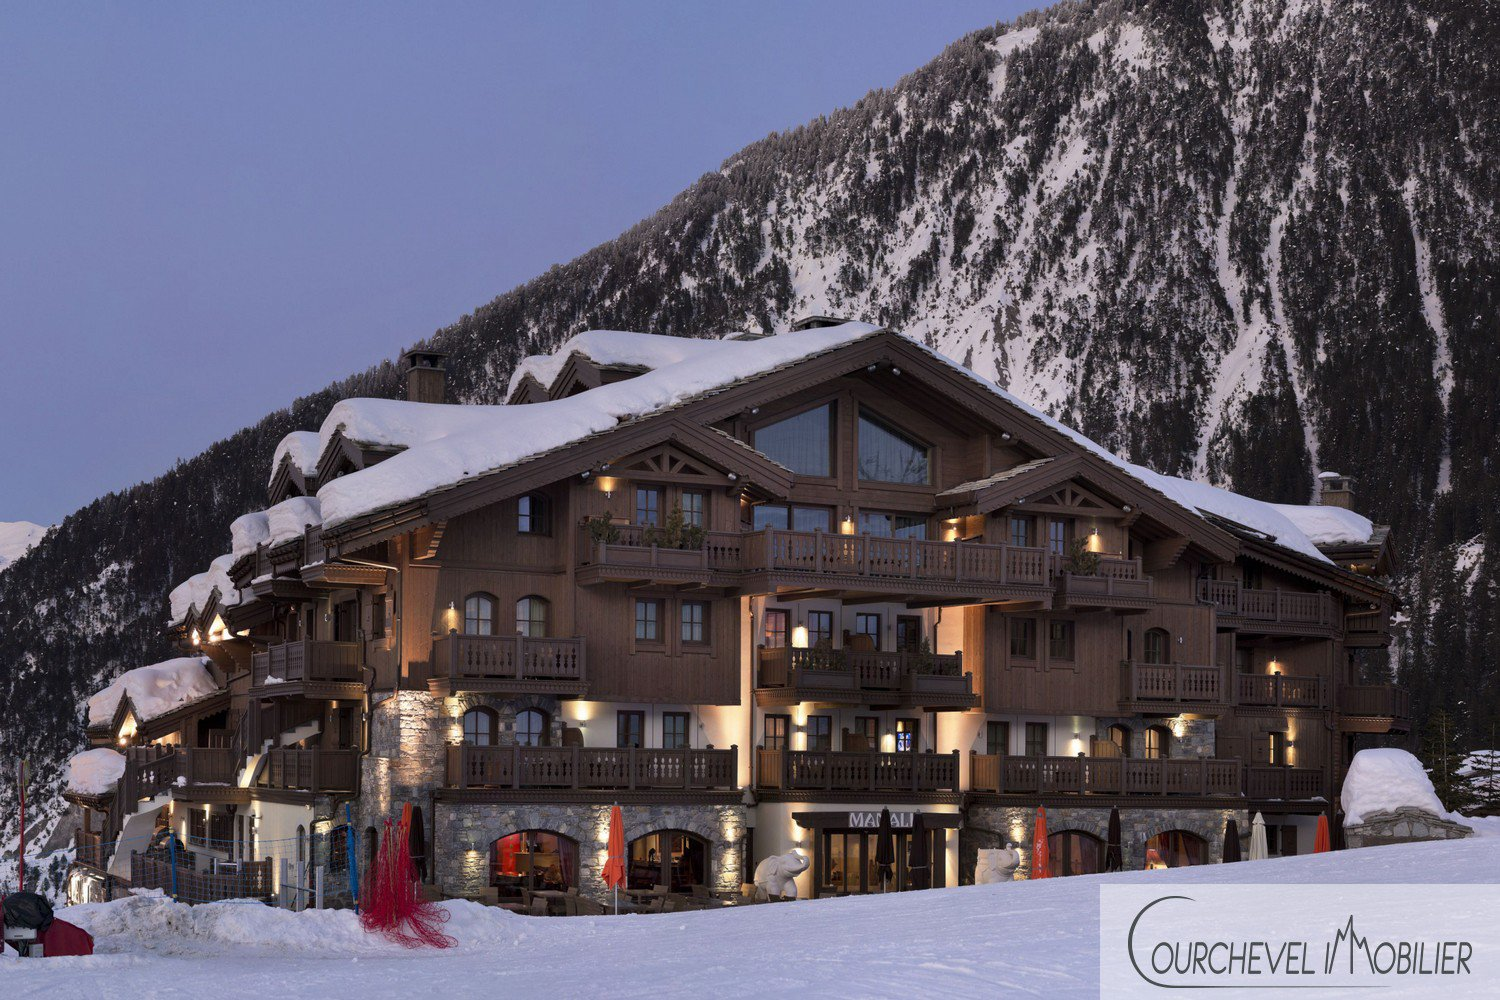 152 sqm apartment in Courchevel 1650